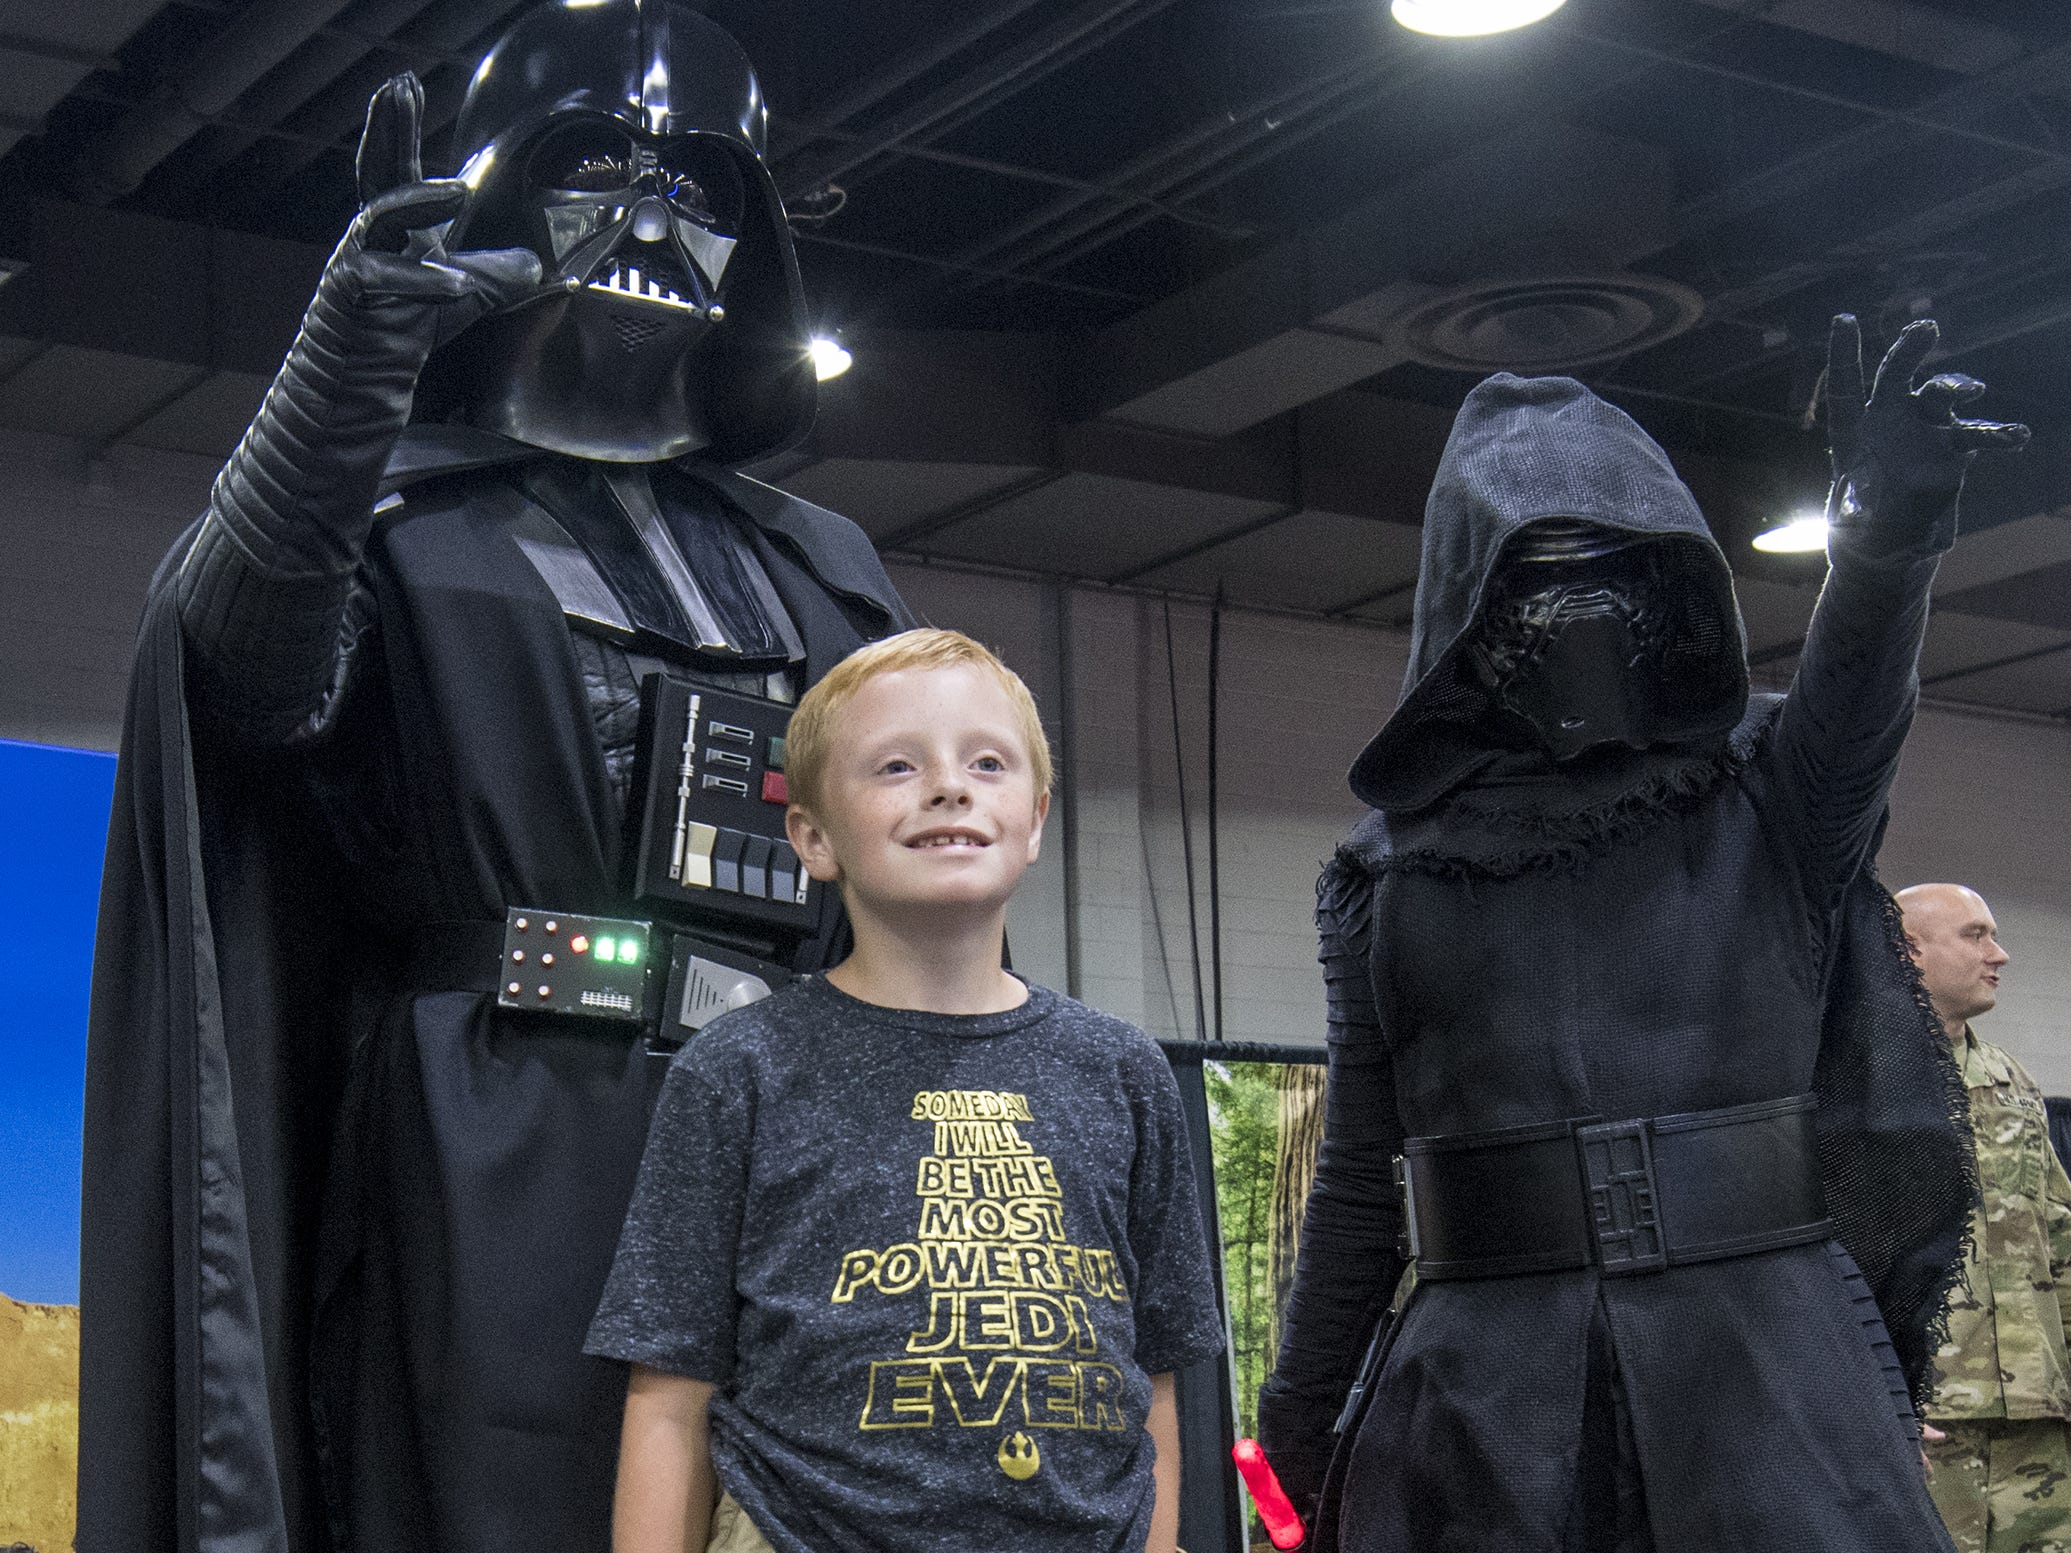 Lucas Hoffman of Lawrenceburg gets a photo with Darth Vader and Kylo Ren from Star Wars.